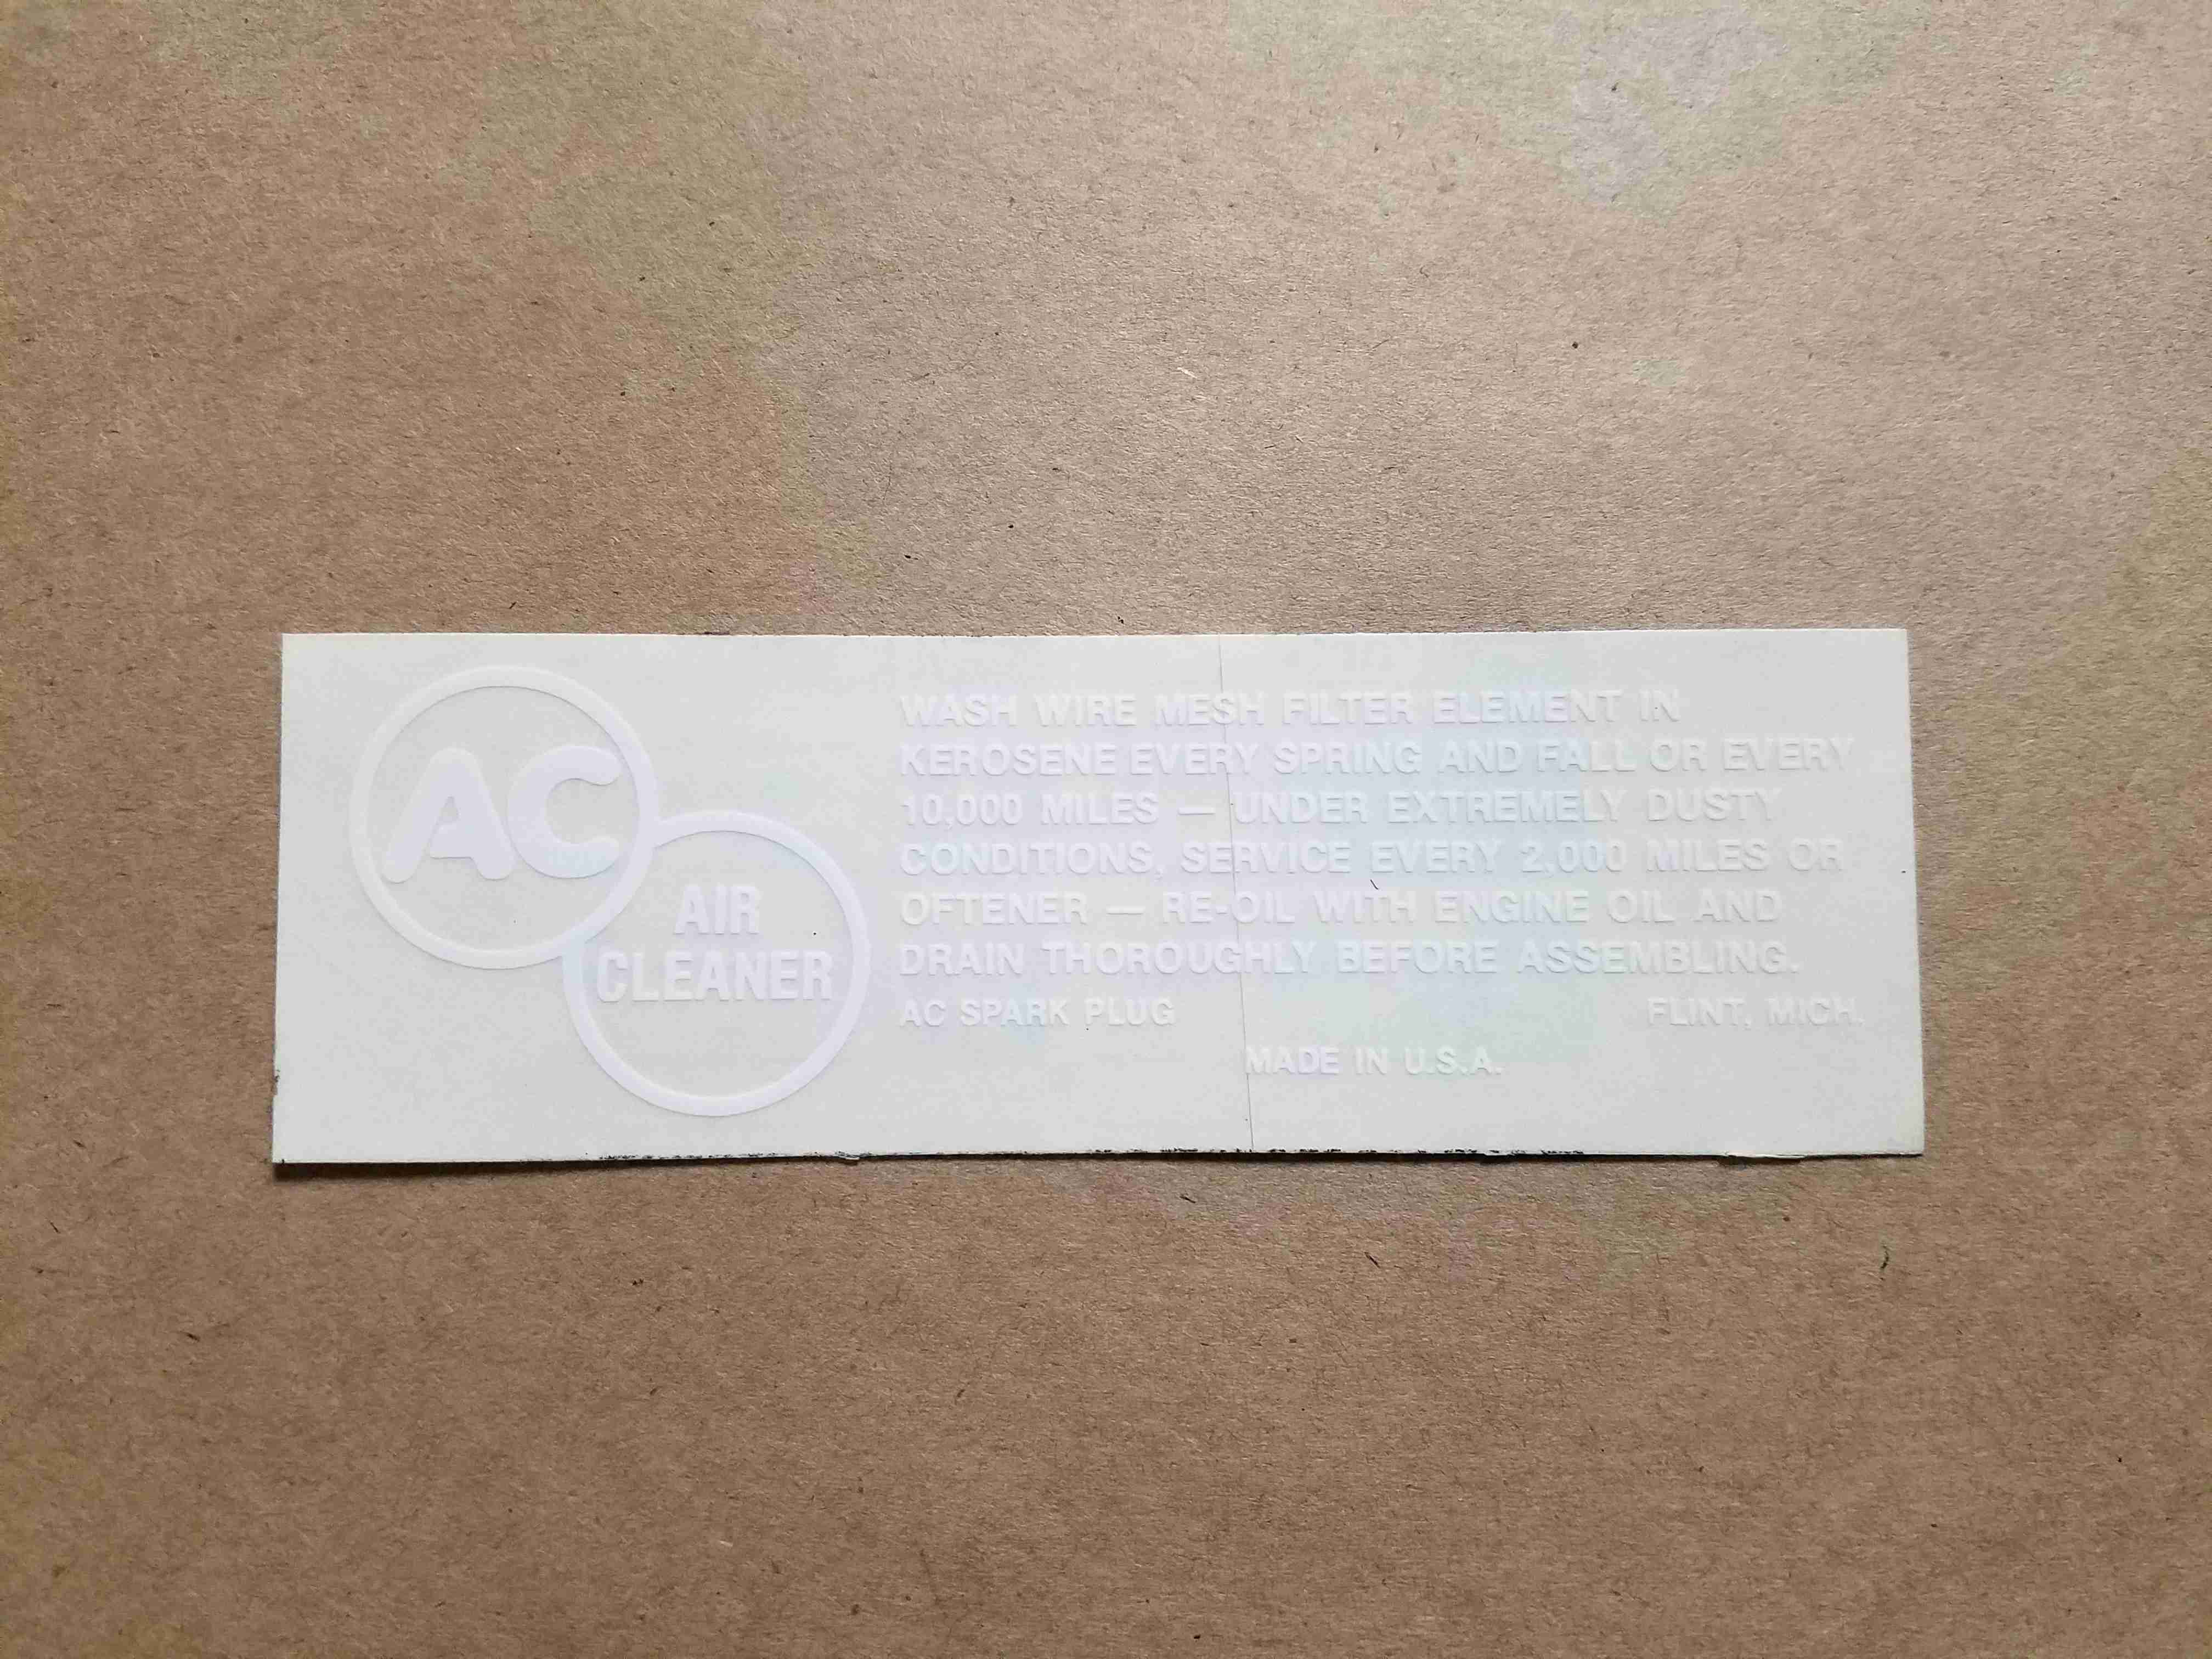 1959-65 w/ 2-Barrel or 4-Barrel Carburetor White Air Cleaner Service Instruction Decal, for A180C mesh type air cleaner element, fits 1959-64 2bbl 4bbl 61-63 T4 1bbl 65 P8 2bbl 4bbl